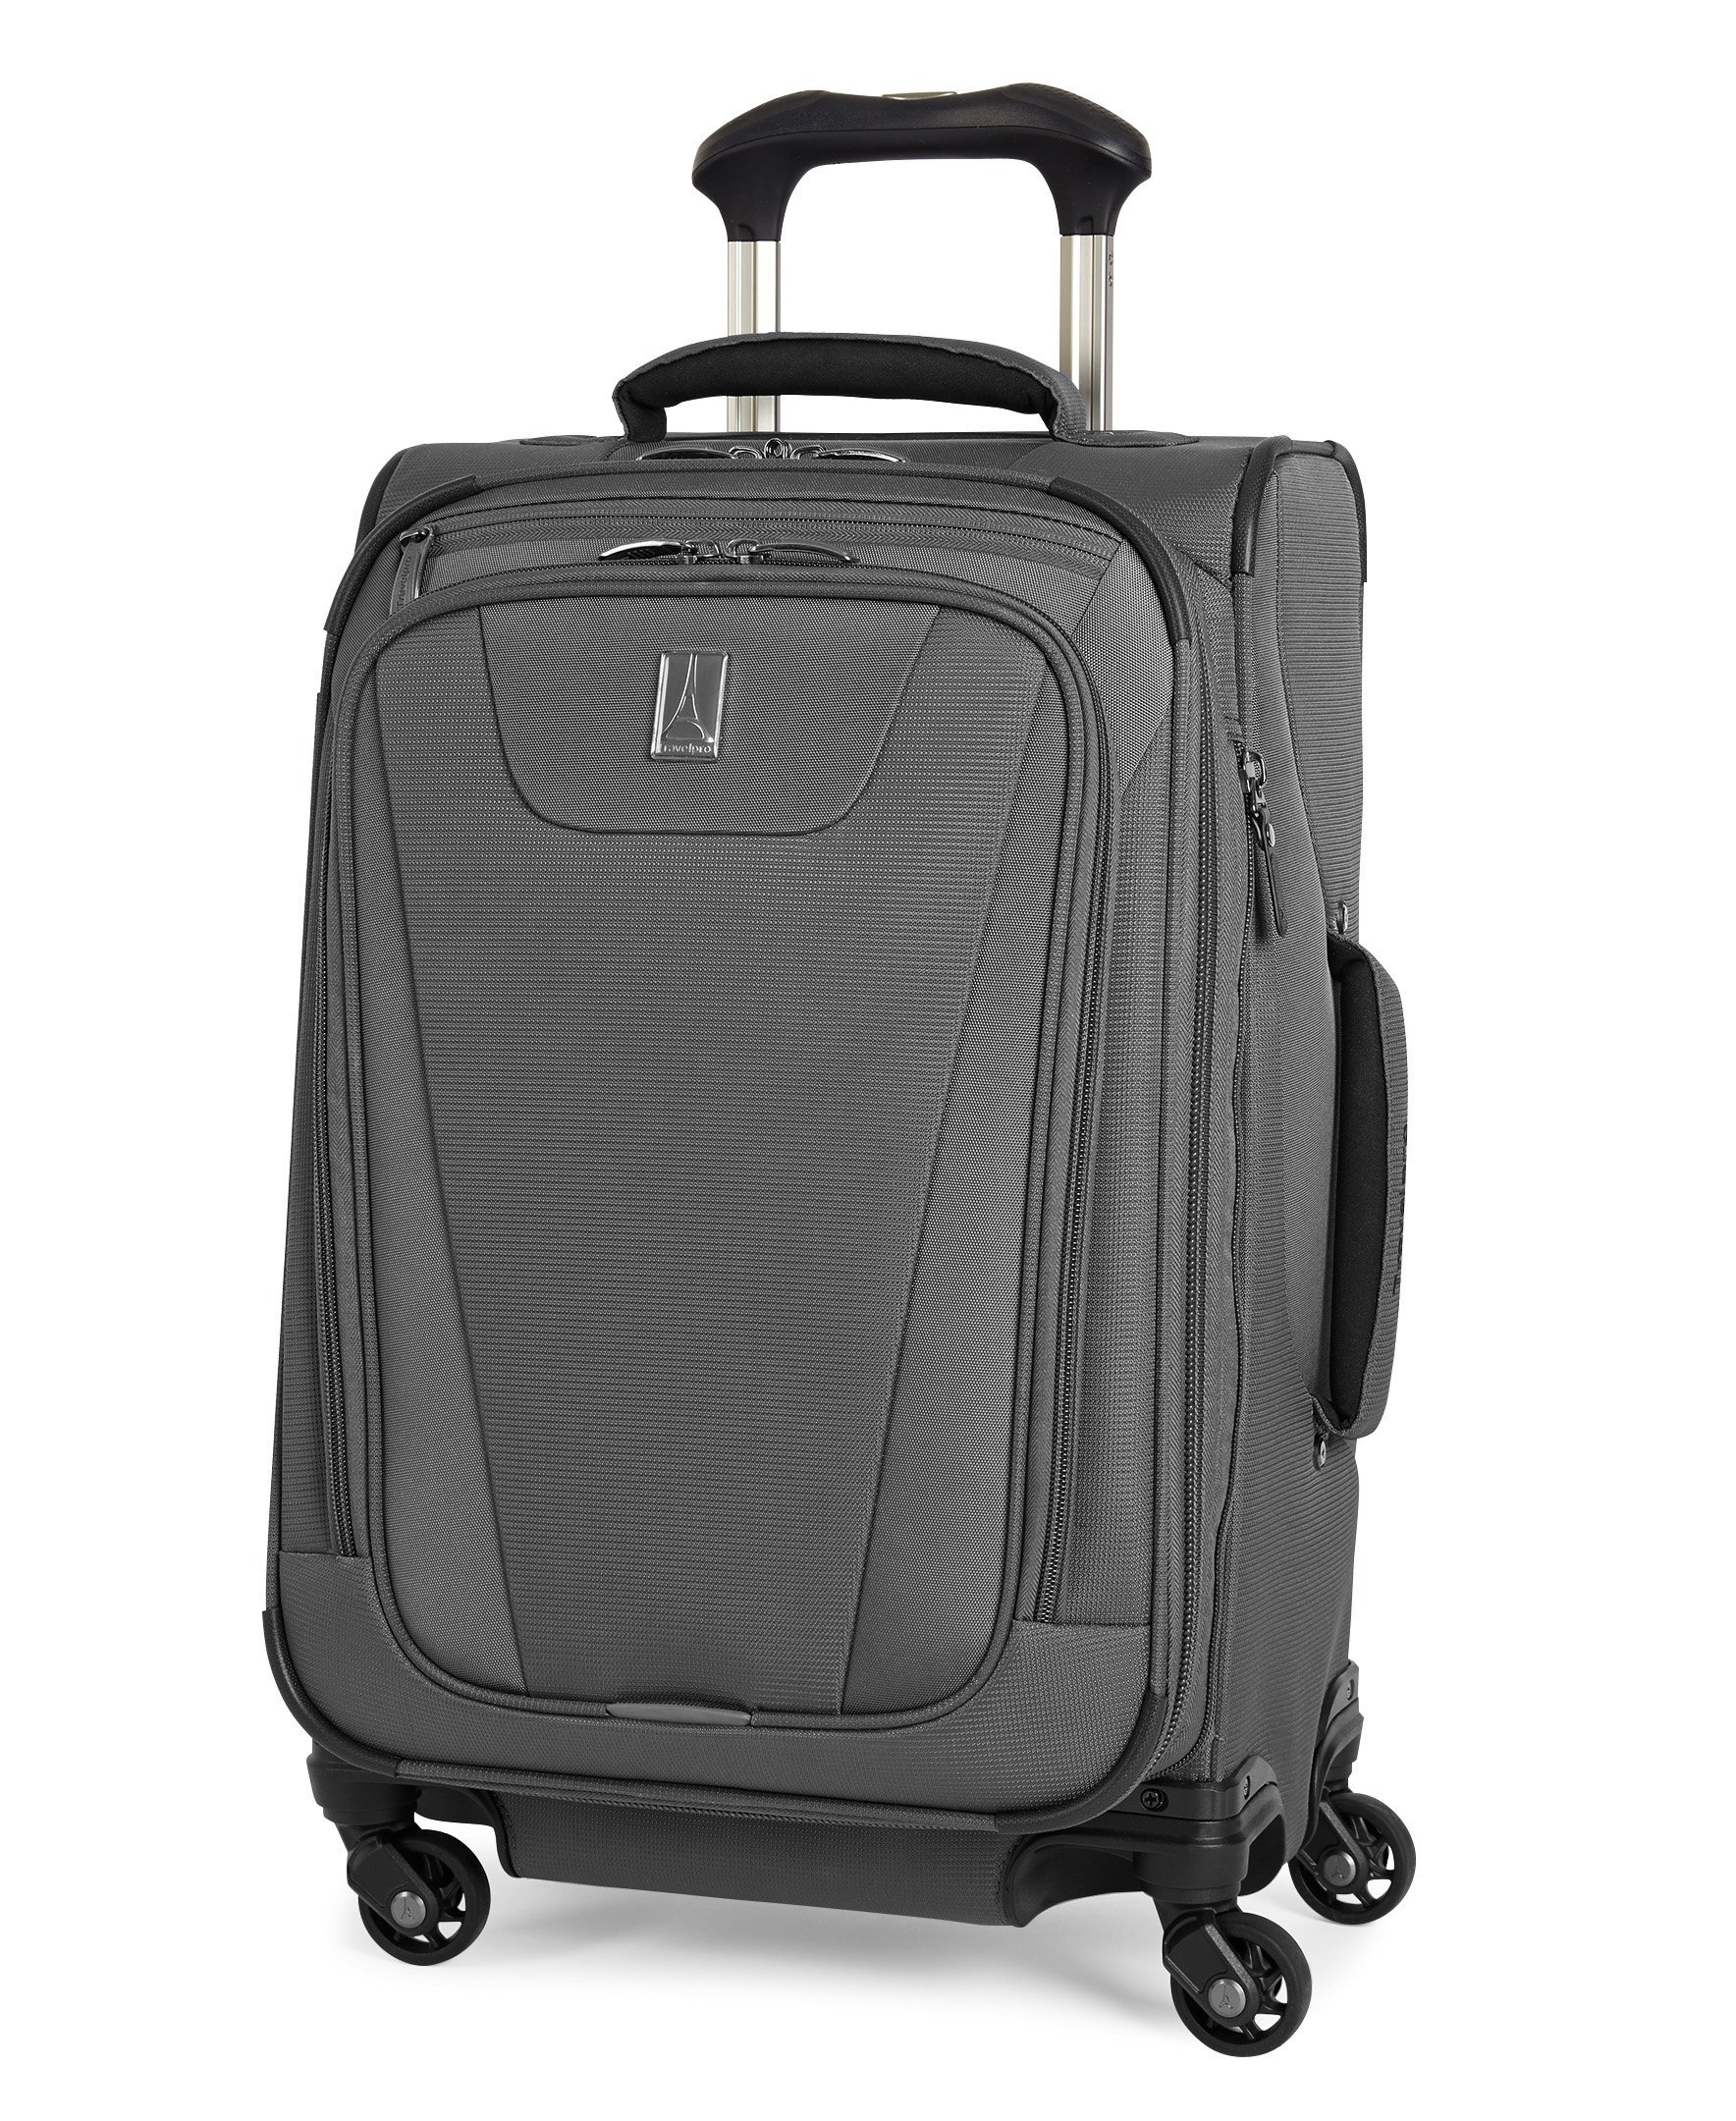 Travelpro Maxlite 4 Expandable 21 Inch Spinner Suitcase (Grey)